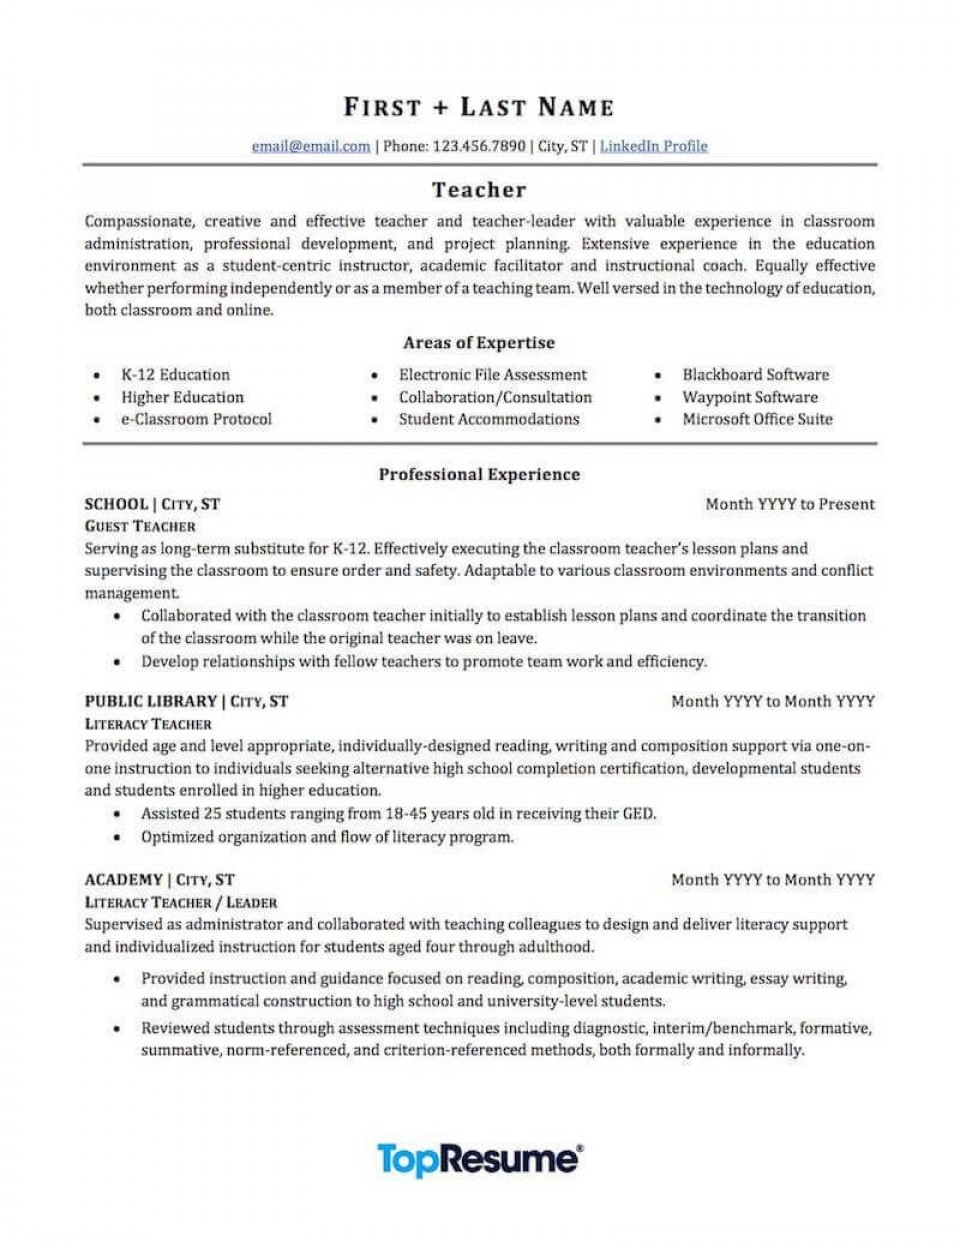 005 Awful Good Resume For Teaching Job High Resolution  Sample Teacher Fresher In India960